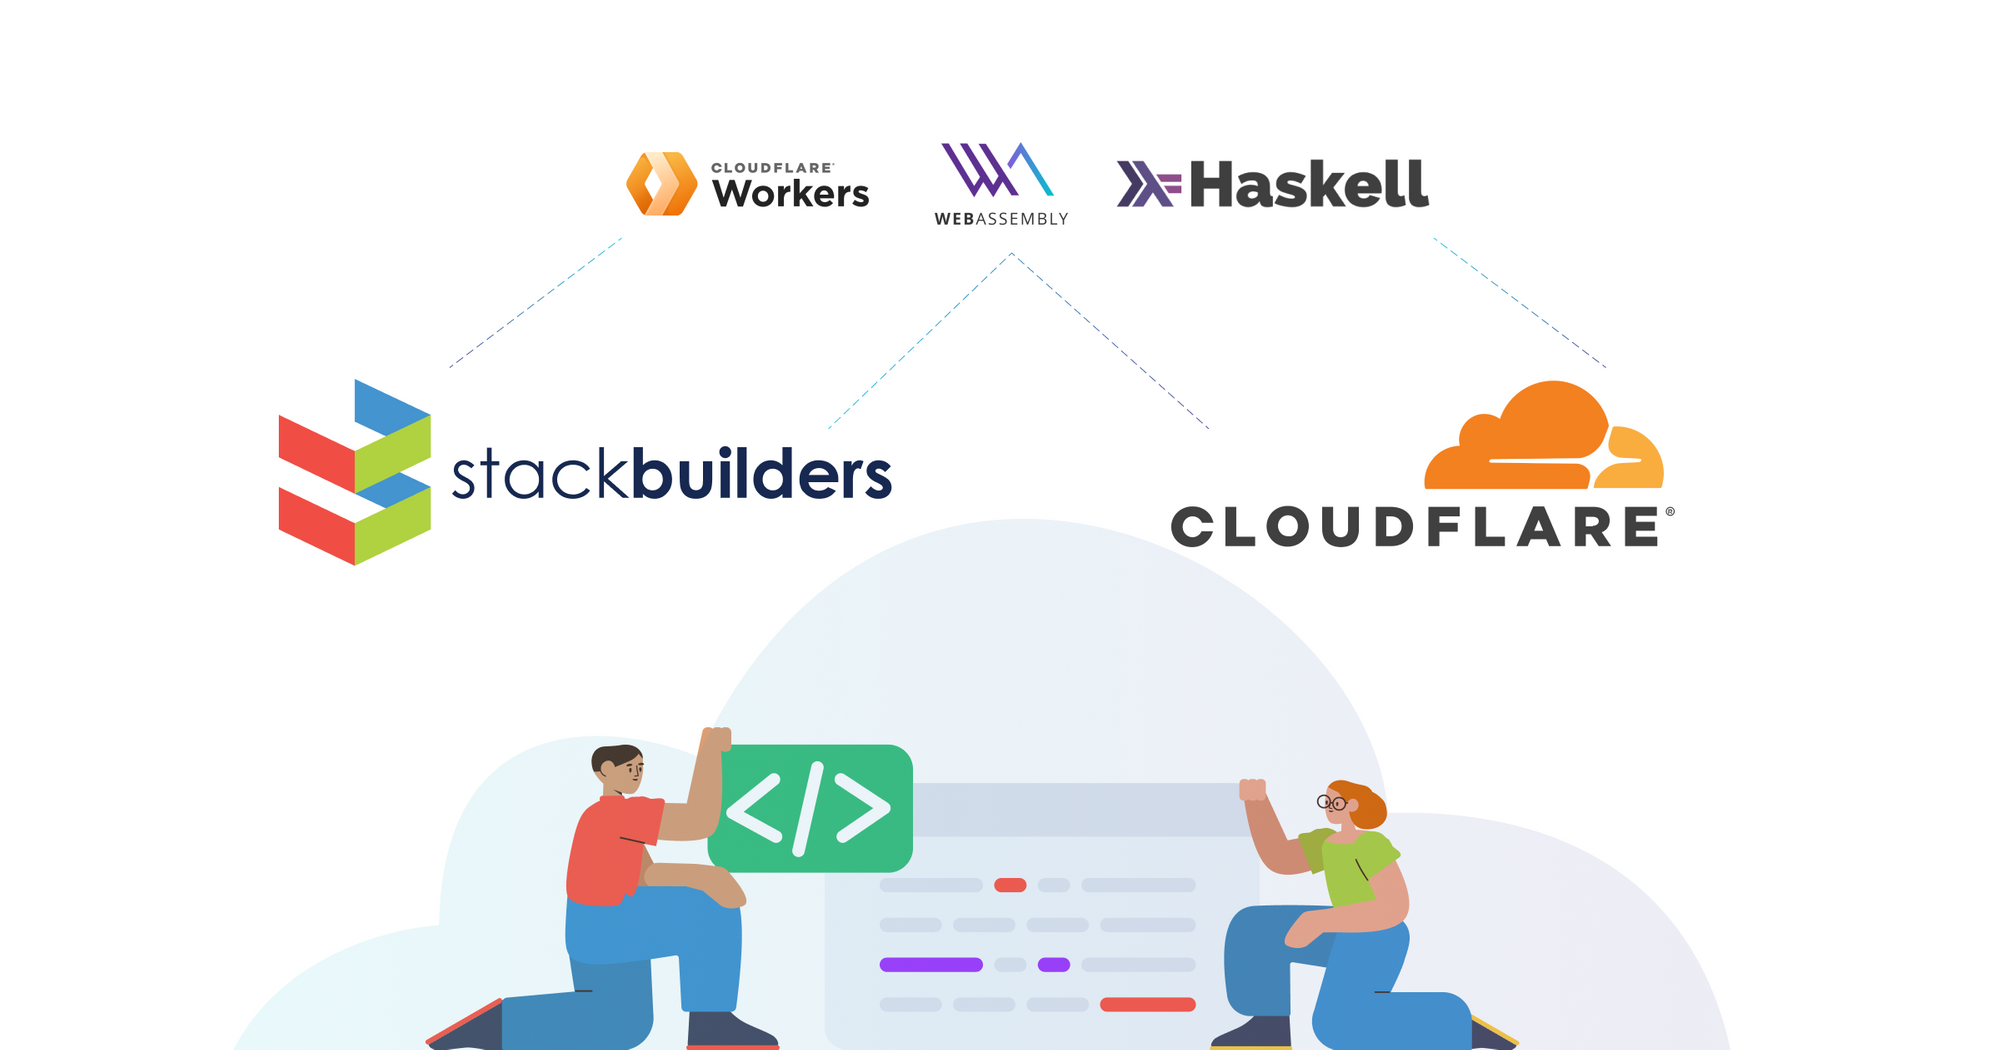 Let's build a Cloudflare Worker with WebAssembly and Haskell